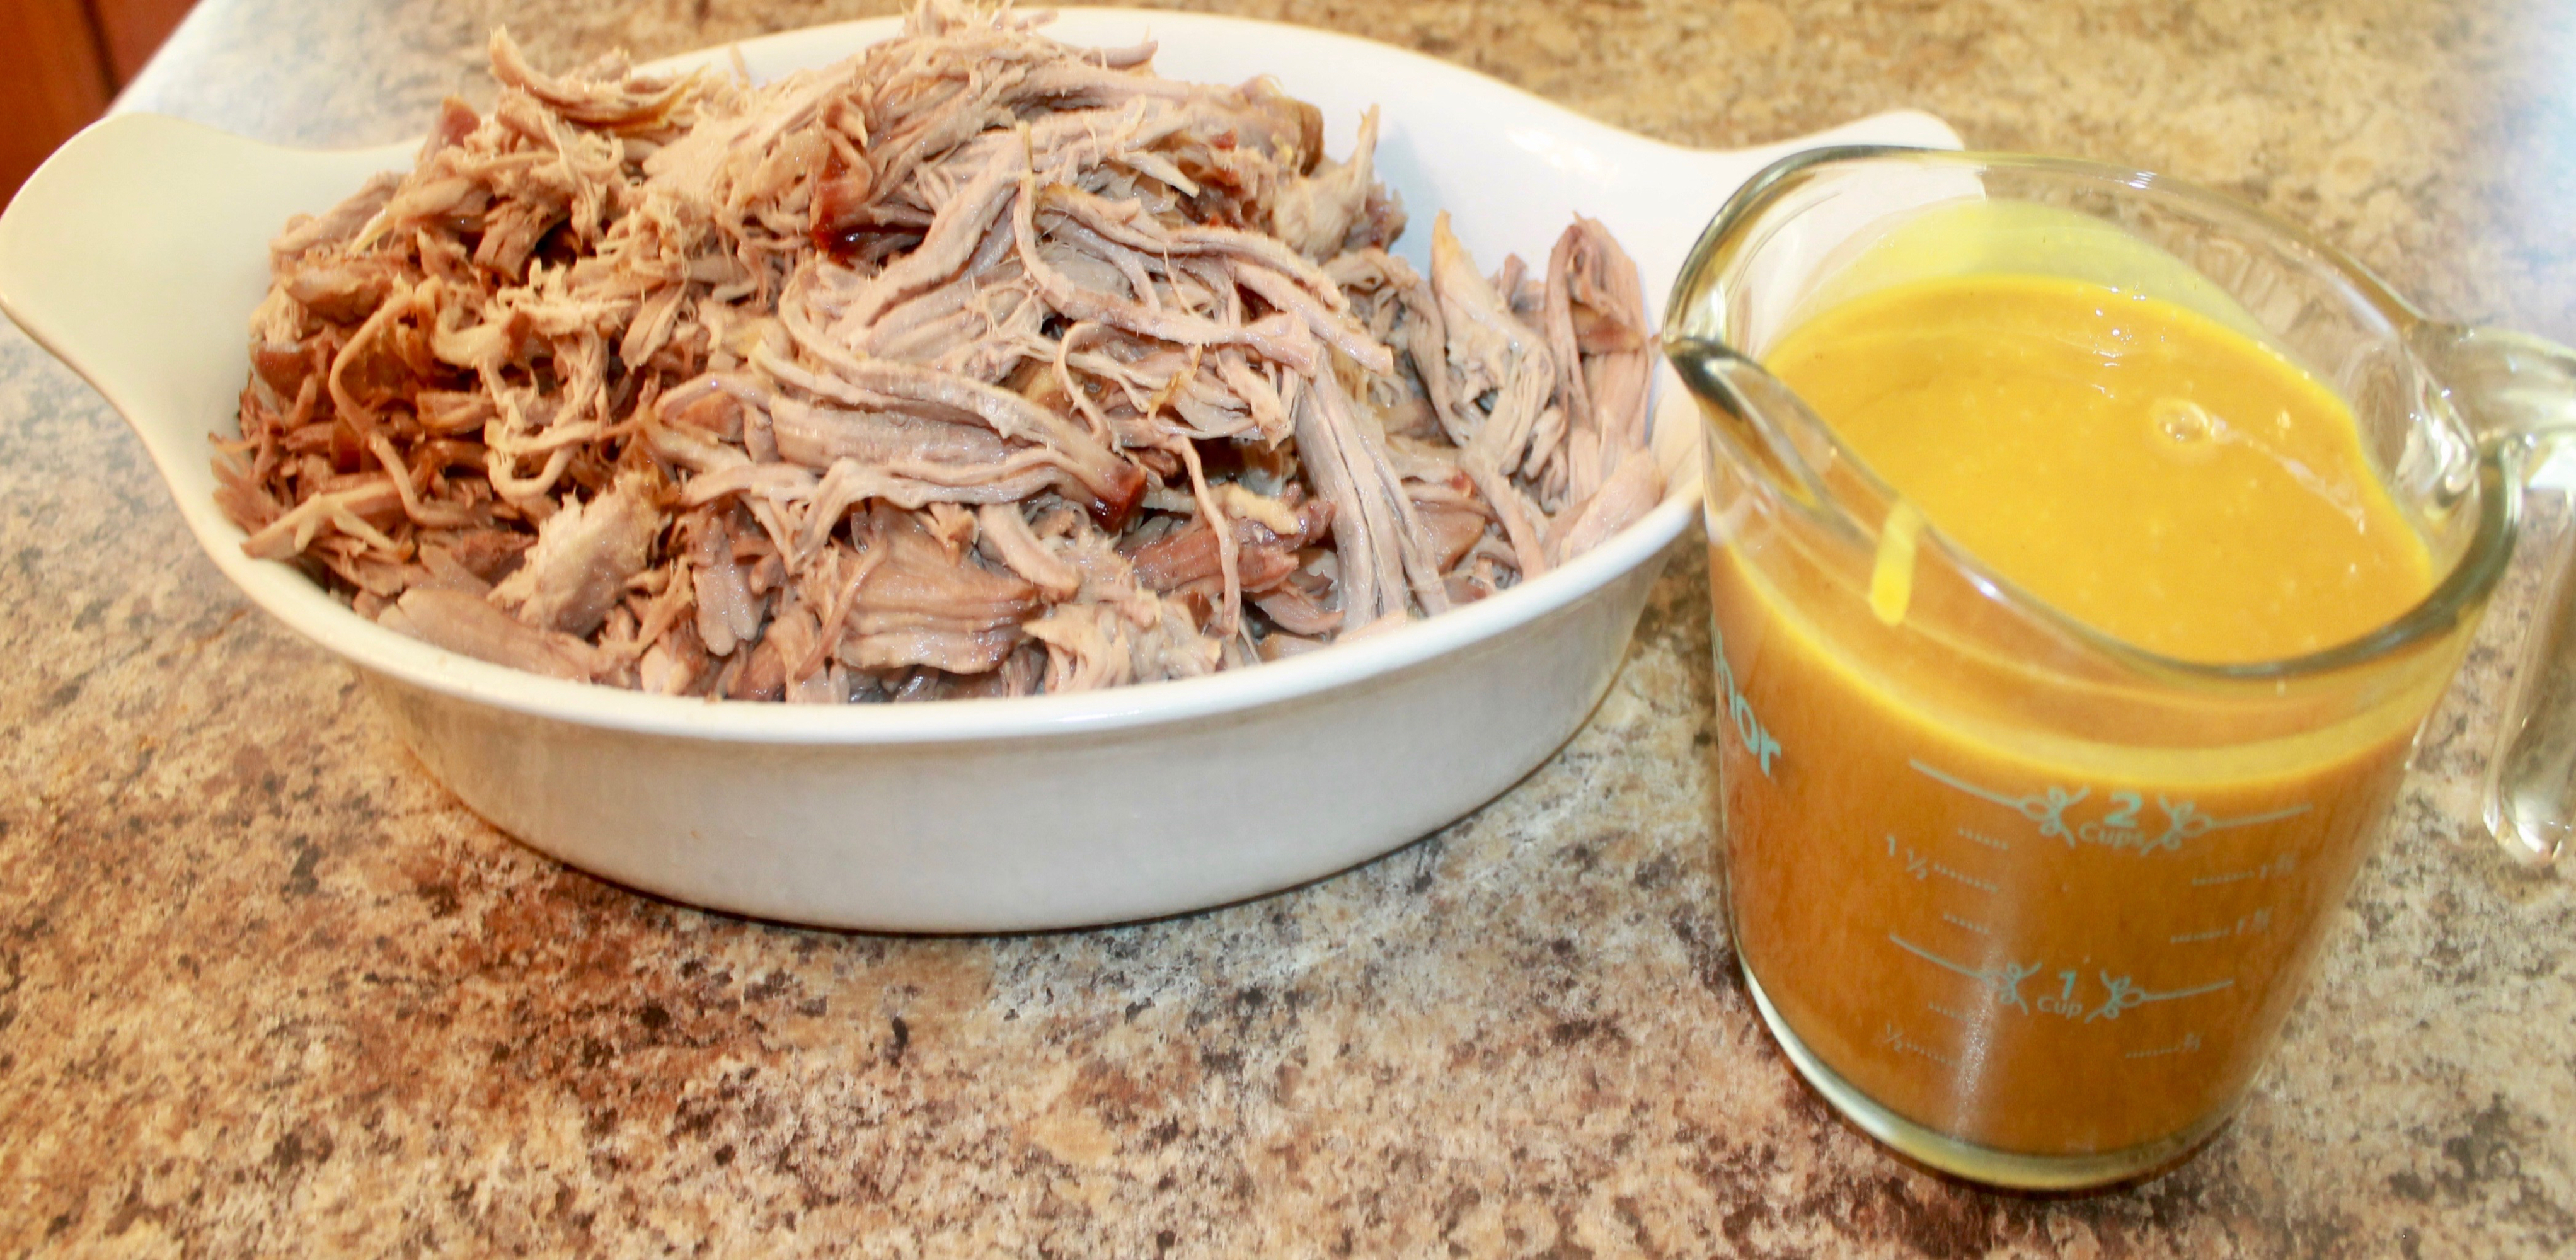 How to create a barbecue sauce for a pulled pork recipe